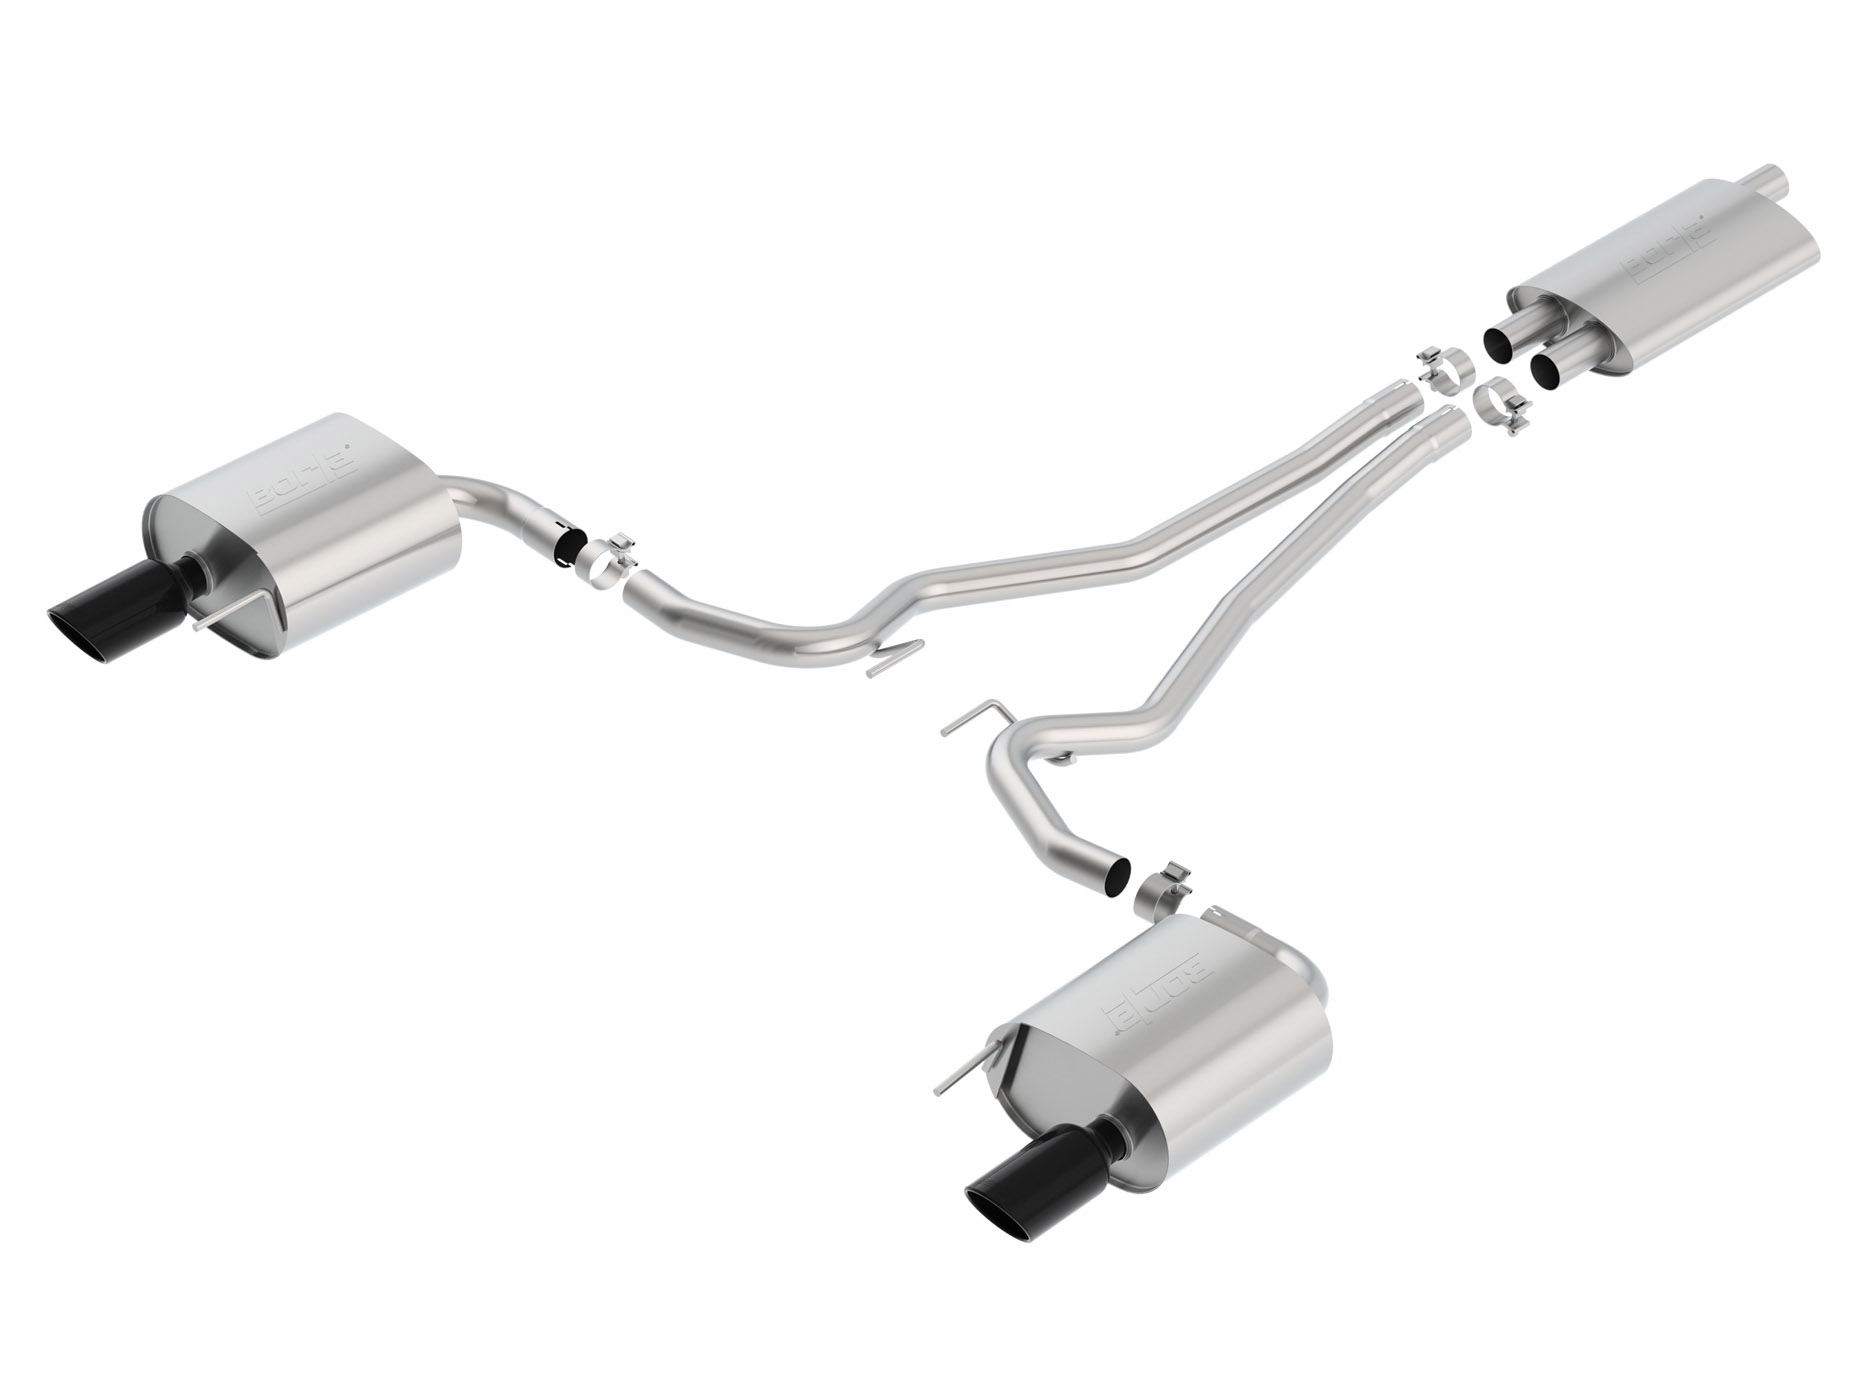 Borla 15-17 Ford Mustang EcoBoost 2.3L EC-Type Cat Back Single Round 4.0in OD 9.5in L Tips Exhaust